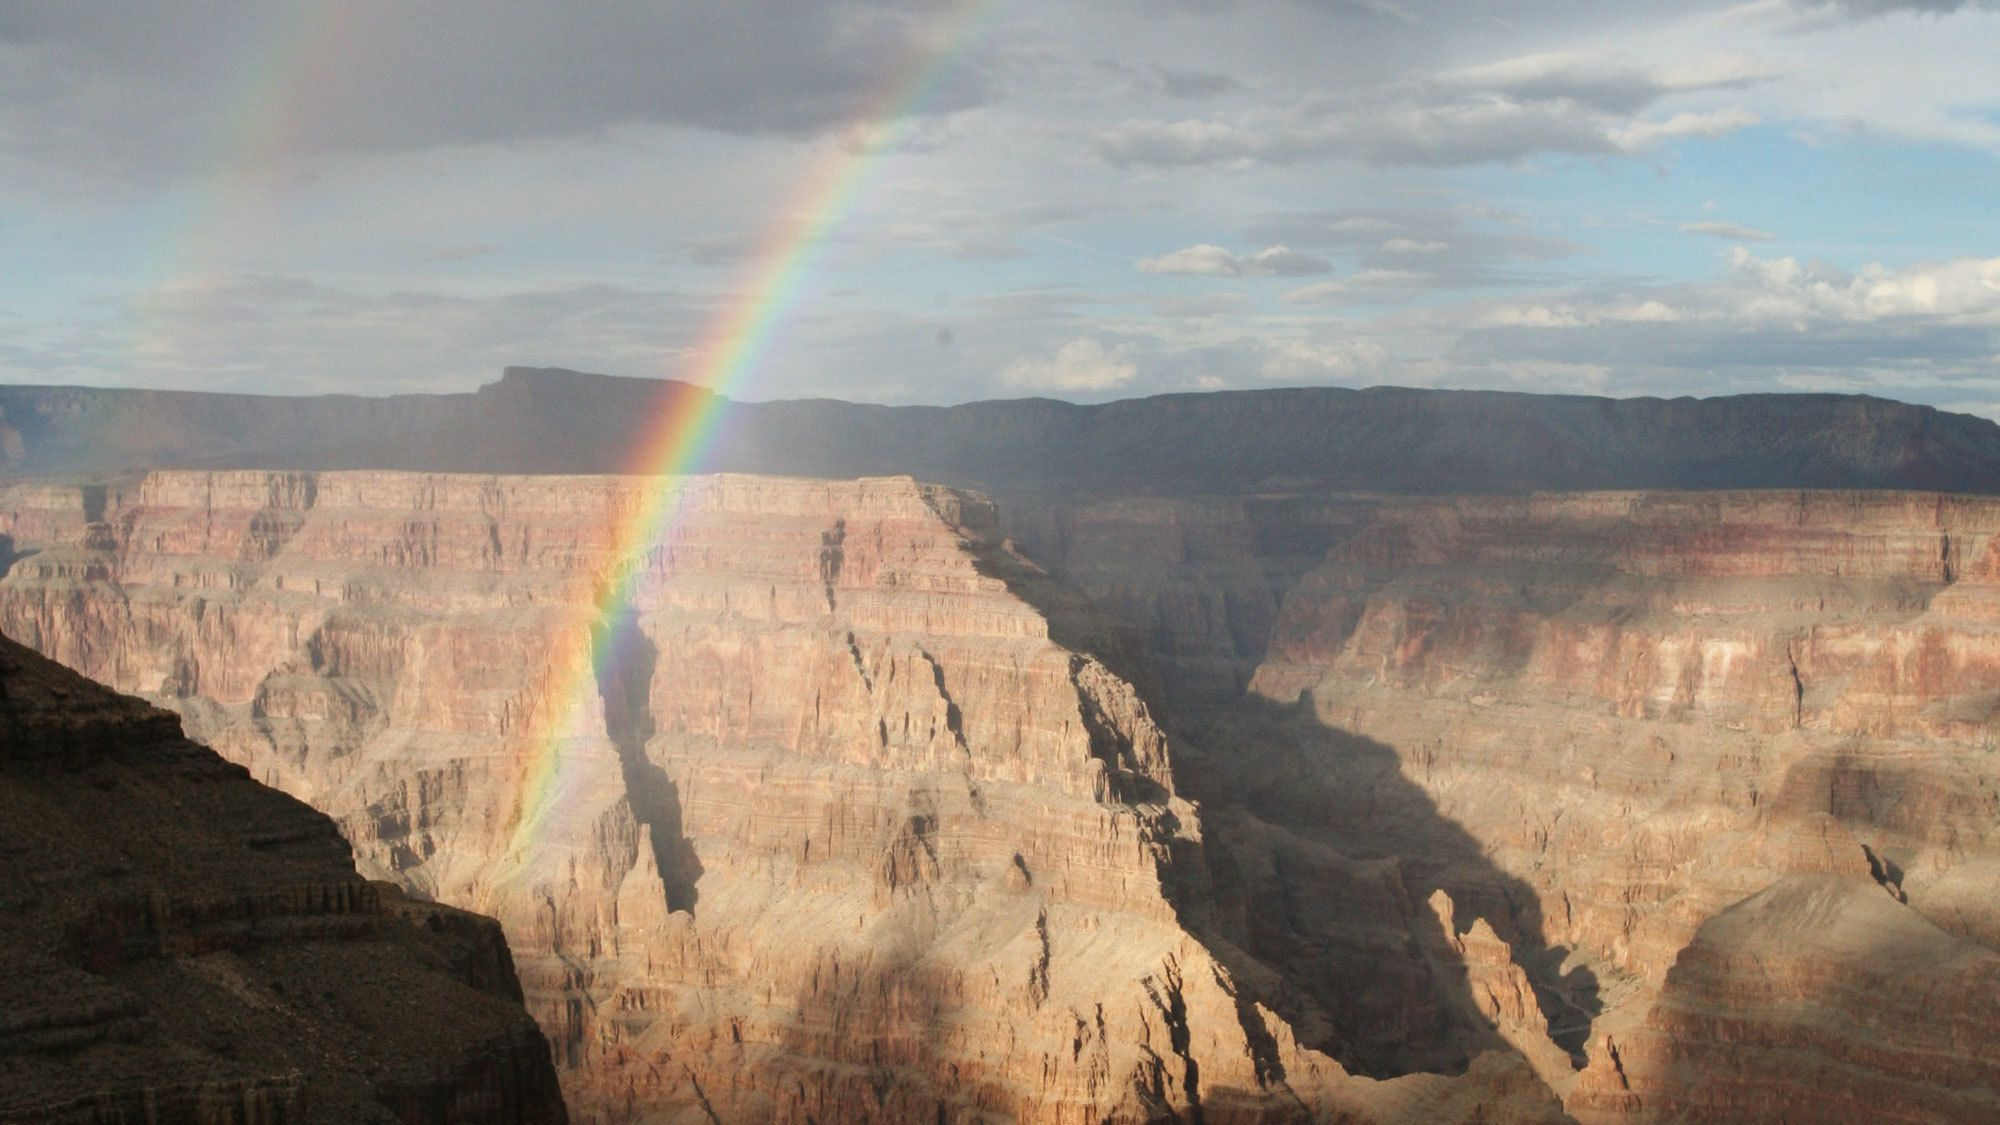 View of the Grand Canyon with a rainbow visible in Arizona